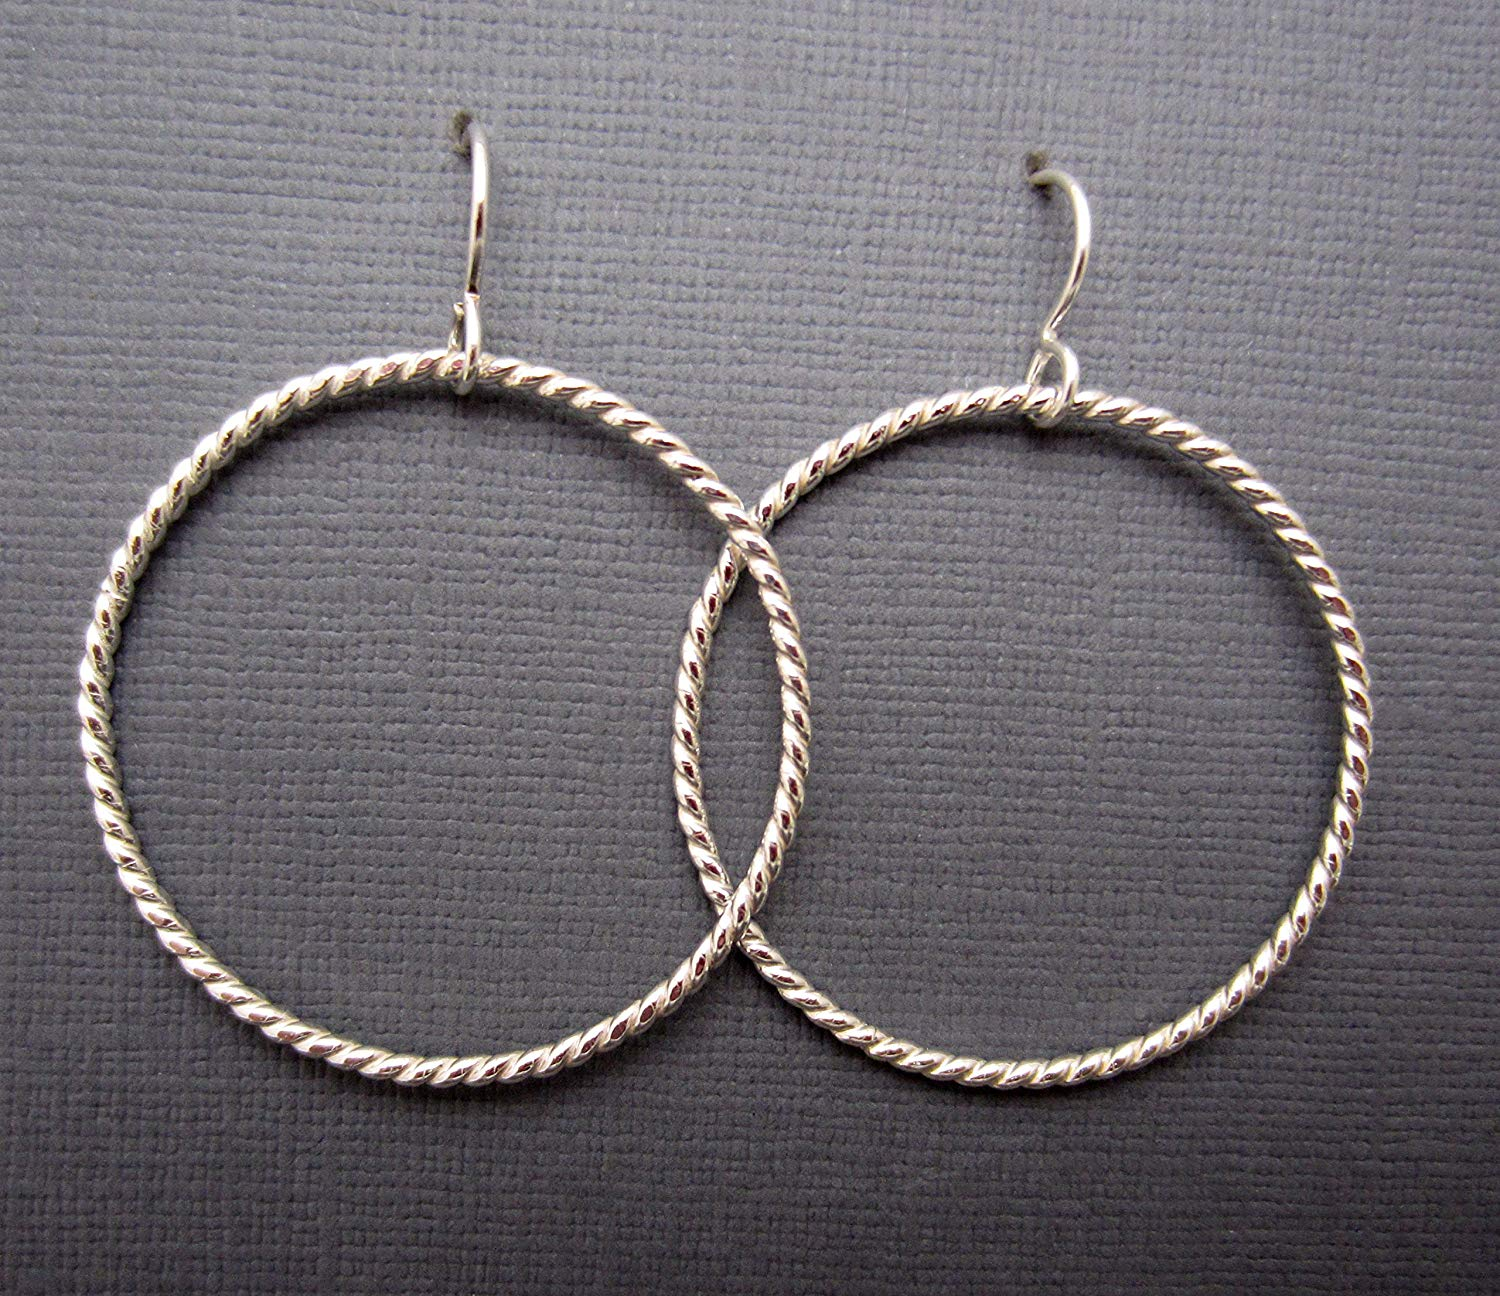 Get Quotations 1 3 8 Round Argentium Sterling Silver Twisted 16 Gauge Dangle Hoop Earrings Ready